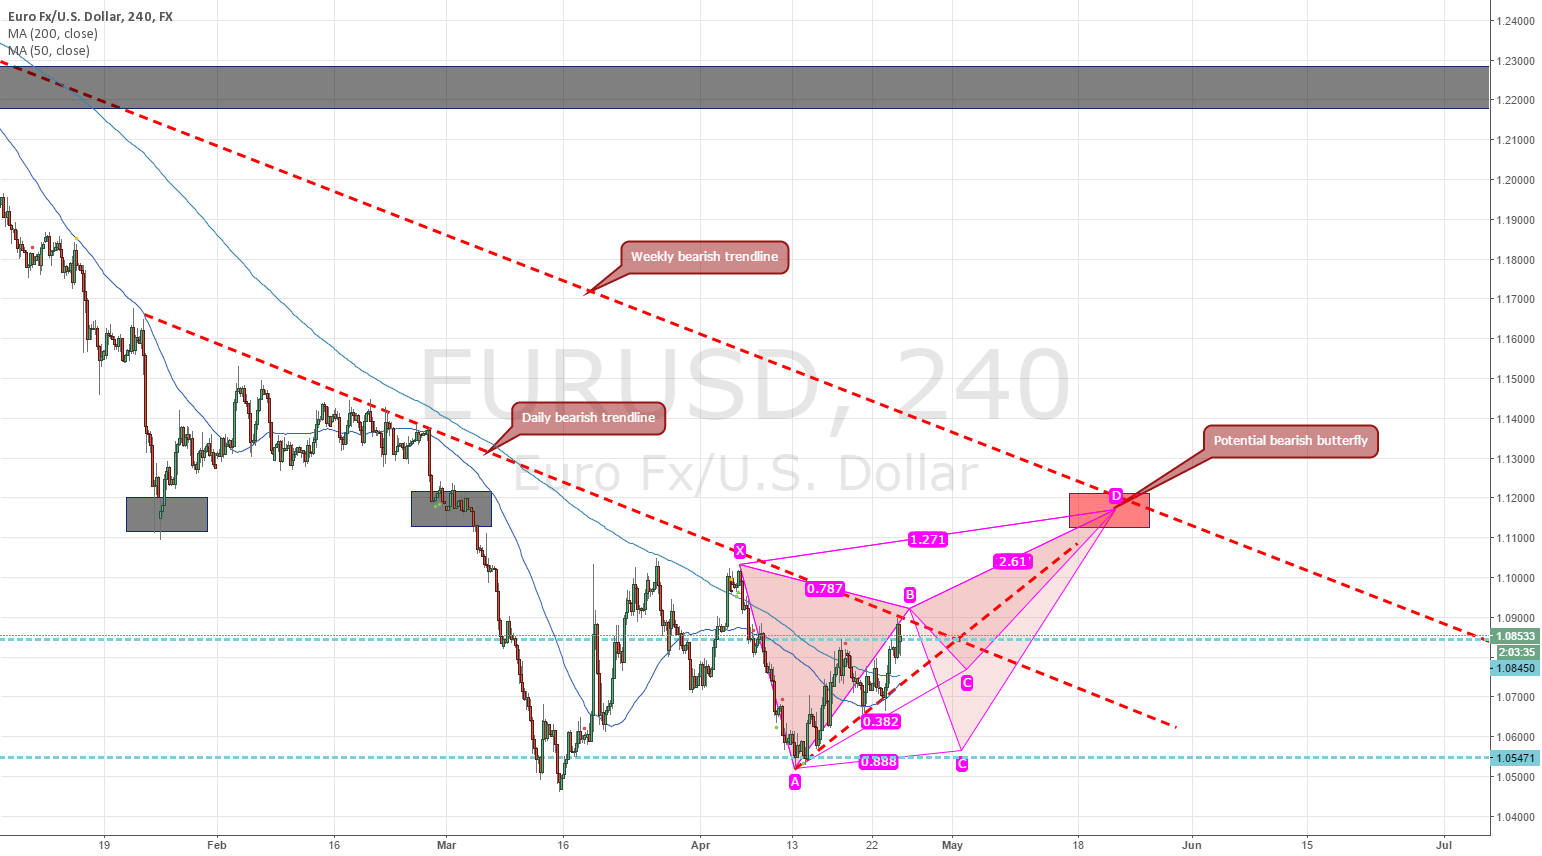 Potential medium-term harmonic pattern for EUR/USD